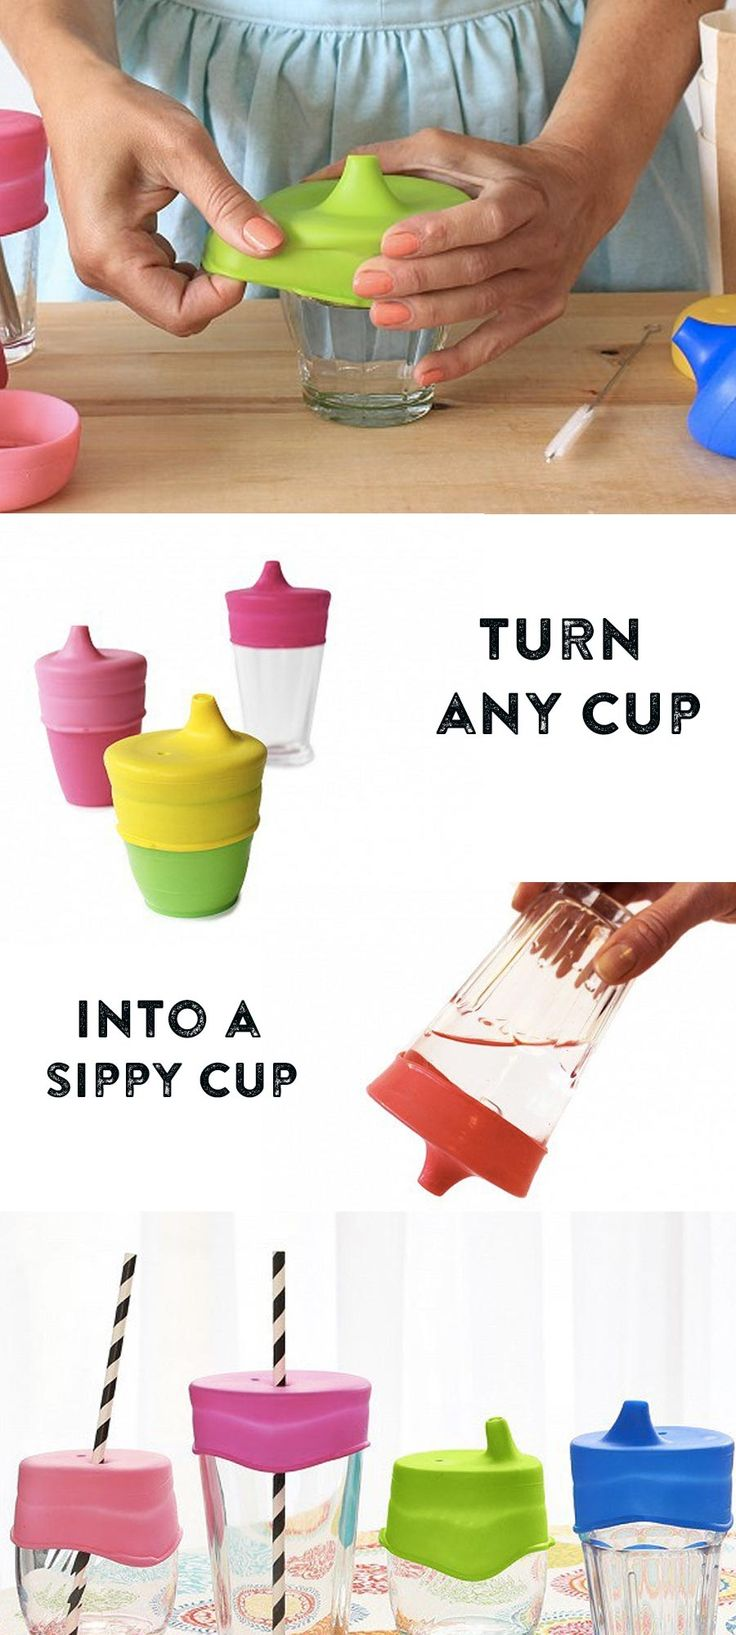 SipSnap is a spill-proof drink lid that fits over virtually any cup or glass.